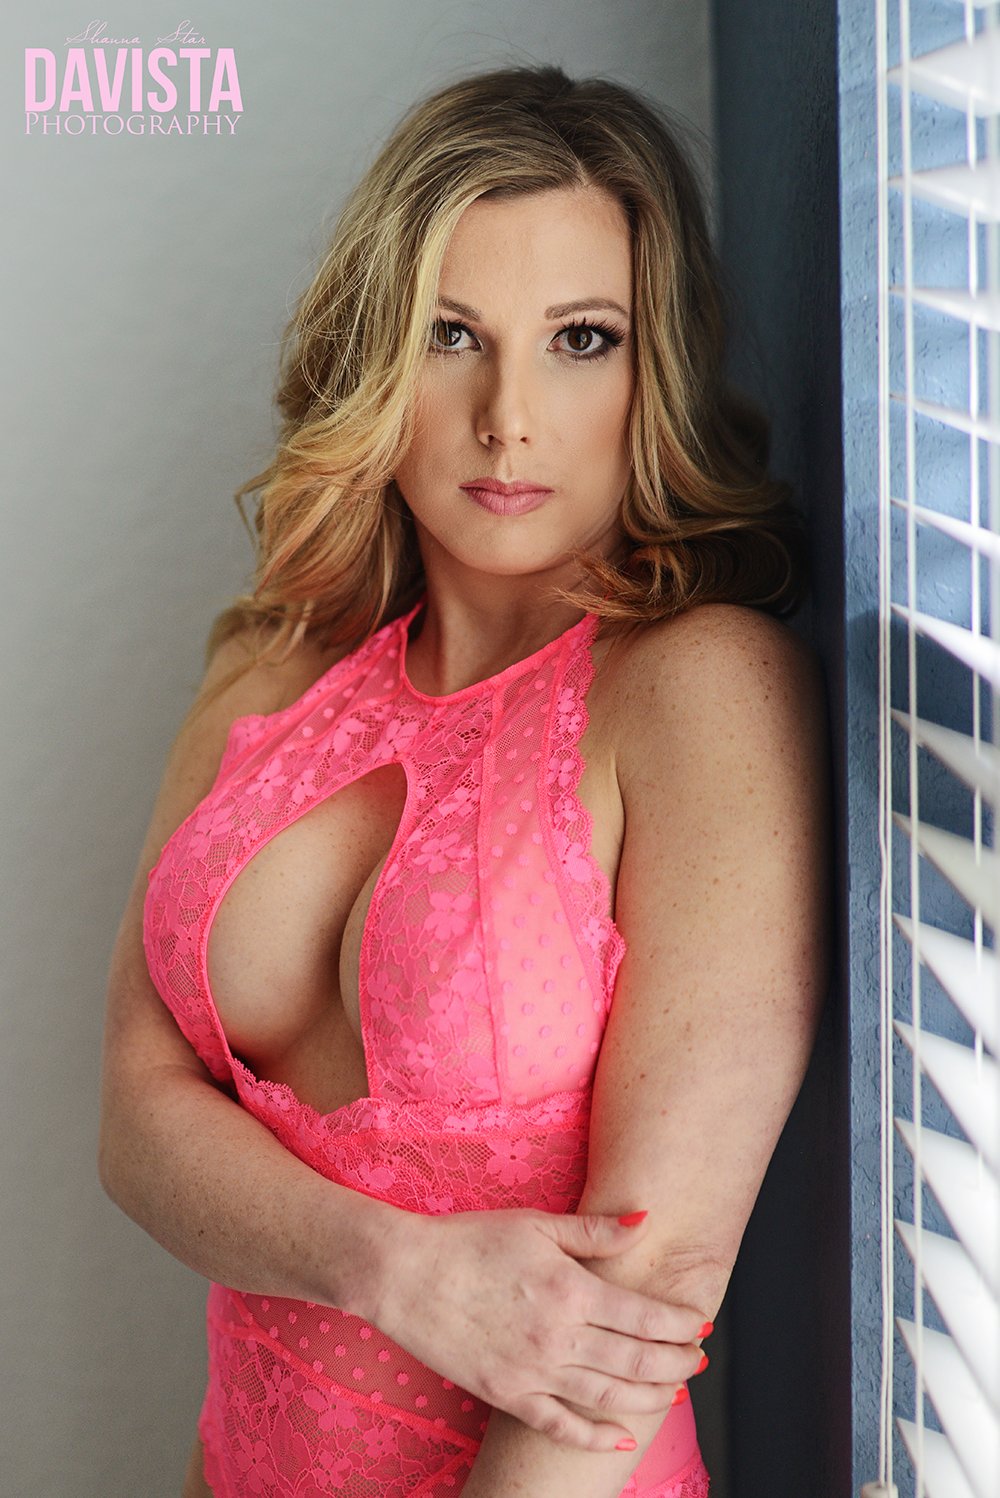 Panama City beach lingerie portraits